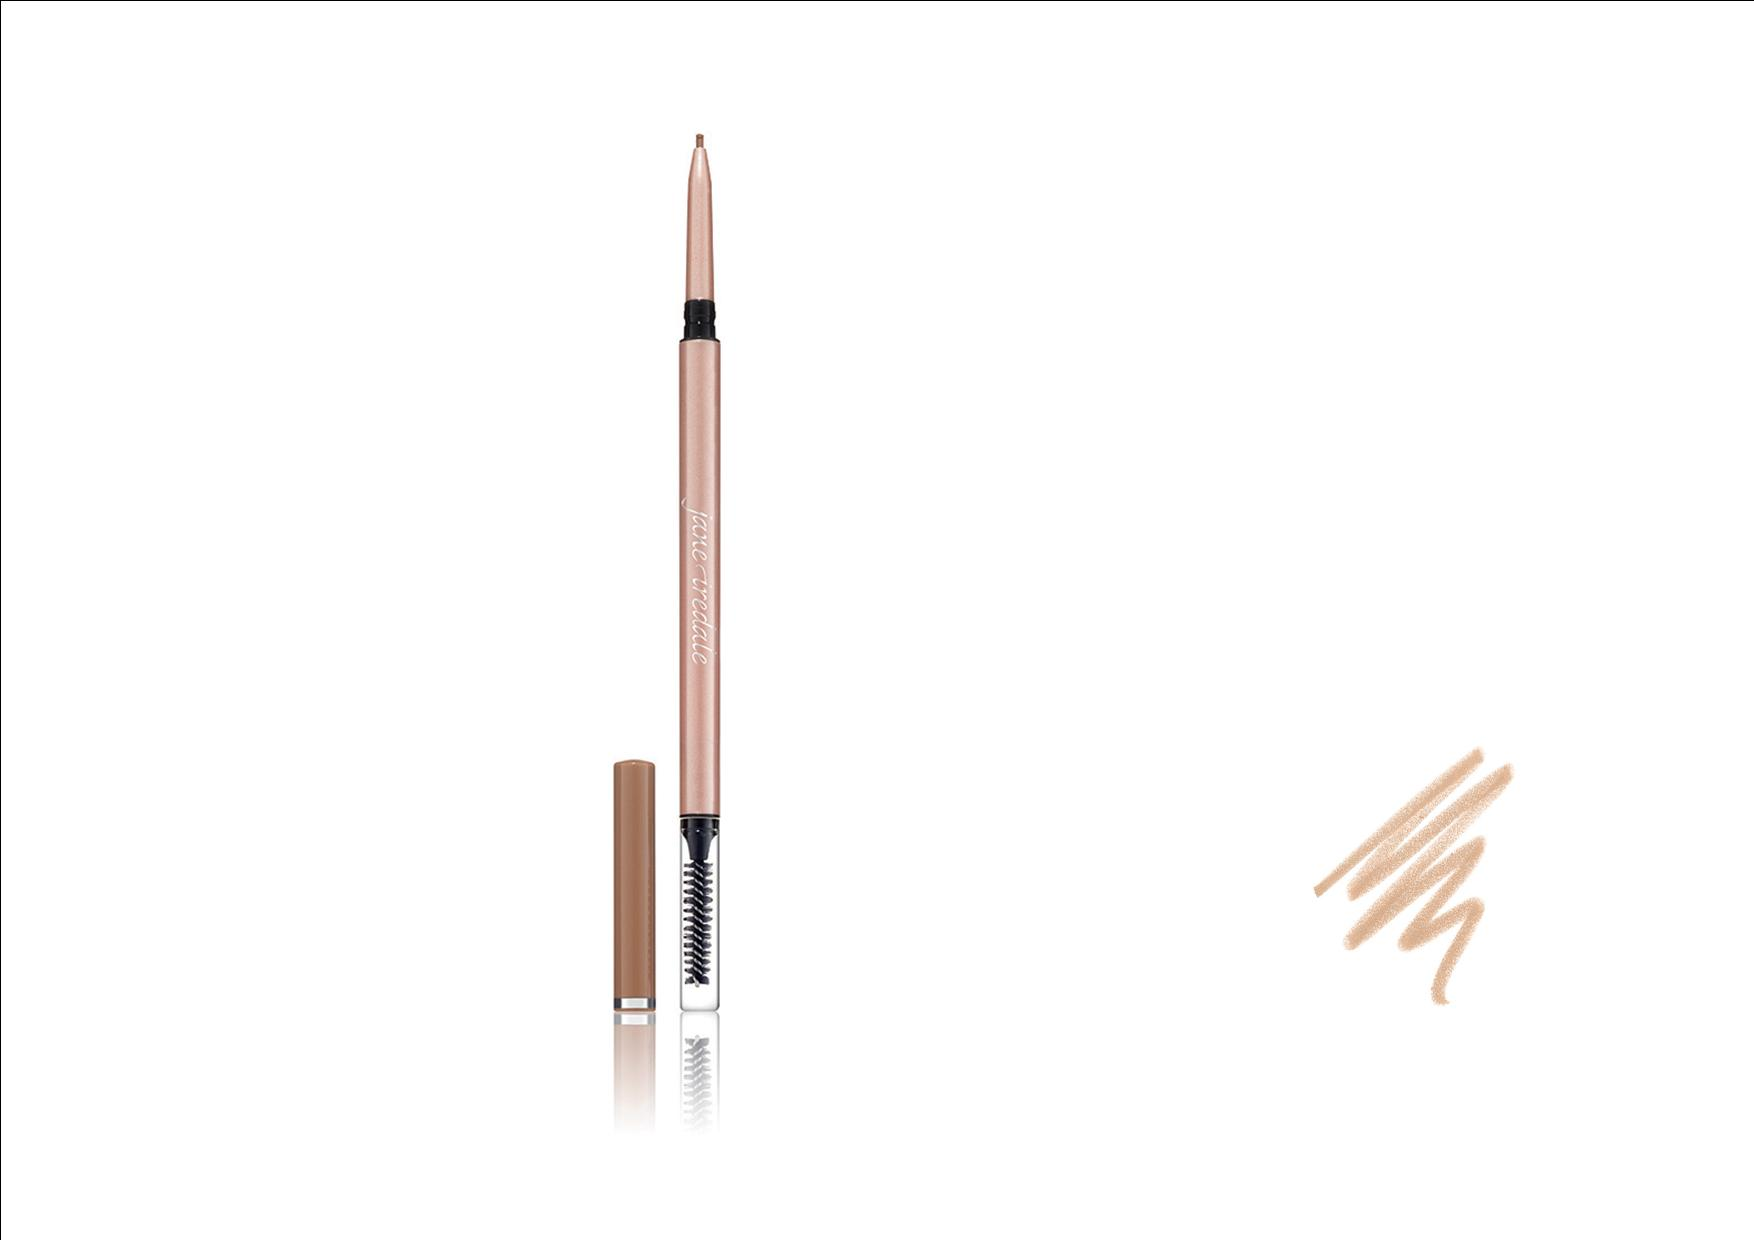 Jane Iredale Rectractable Brow Pencil Blonde